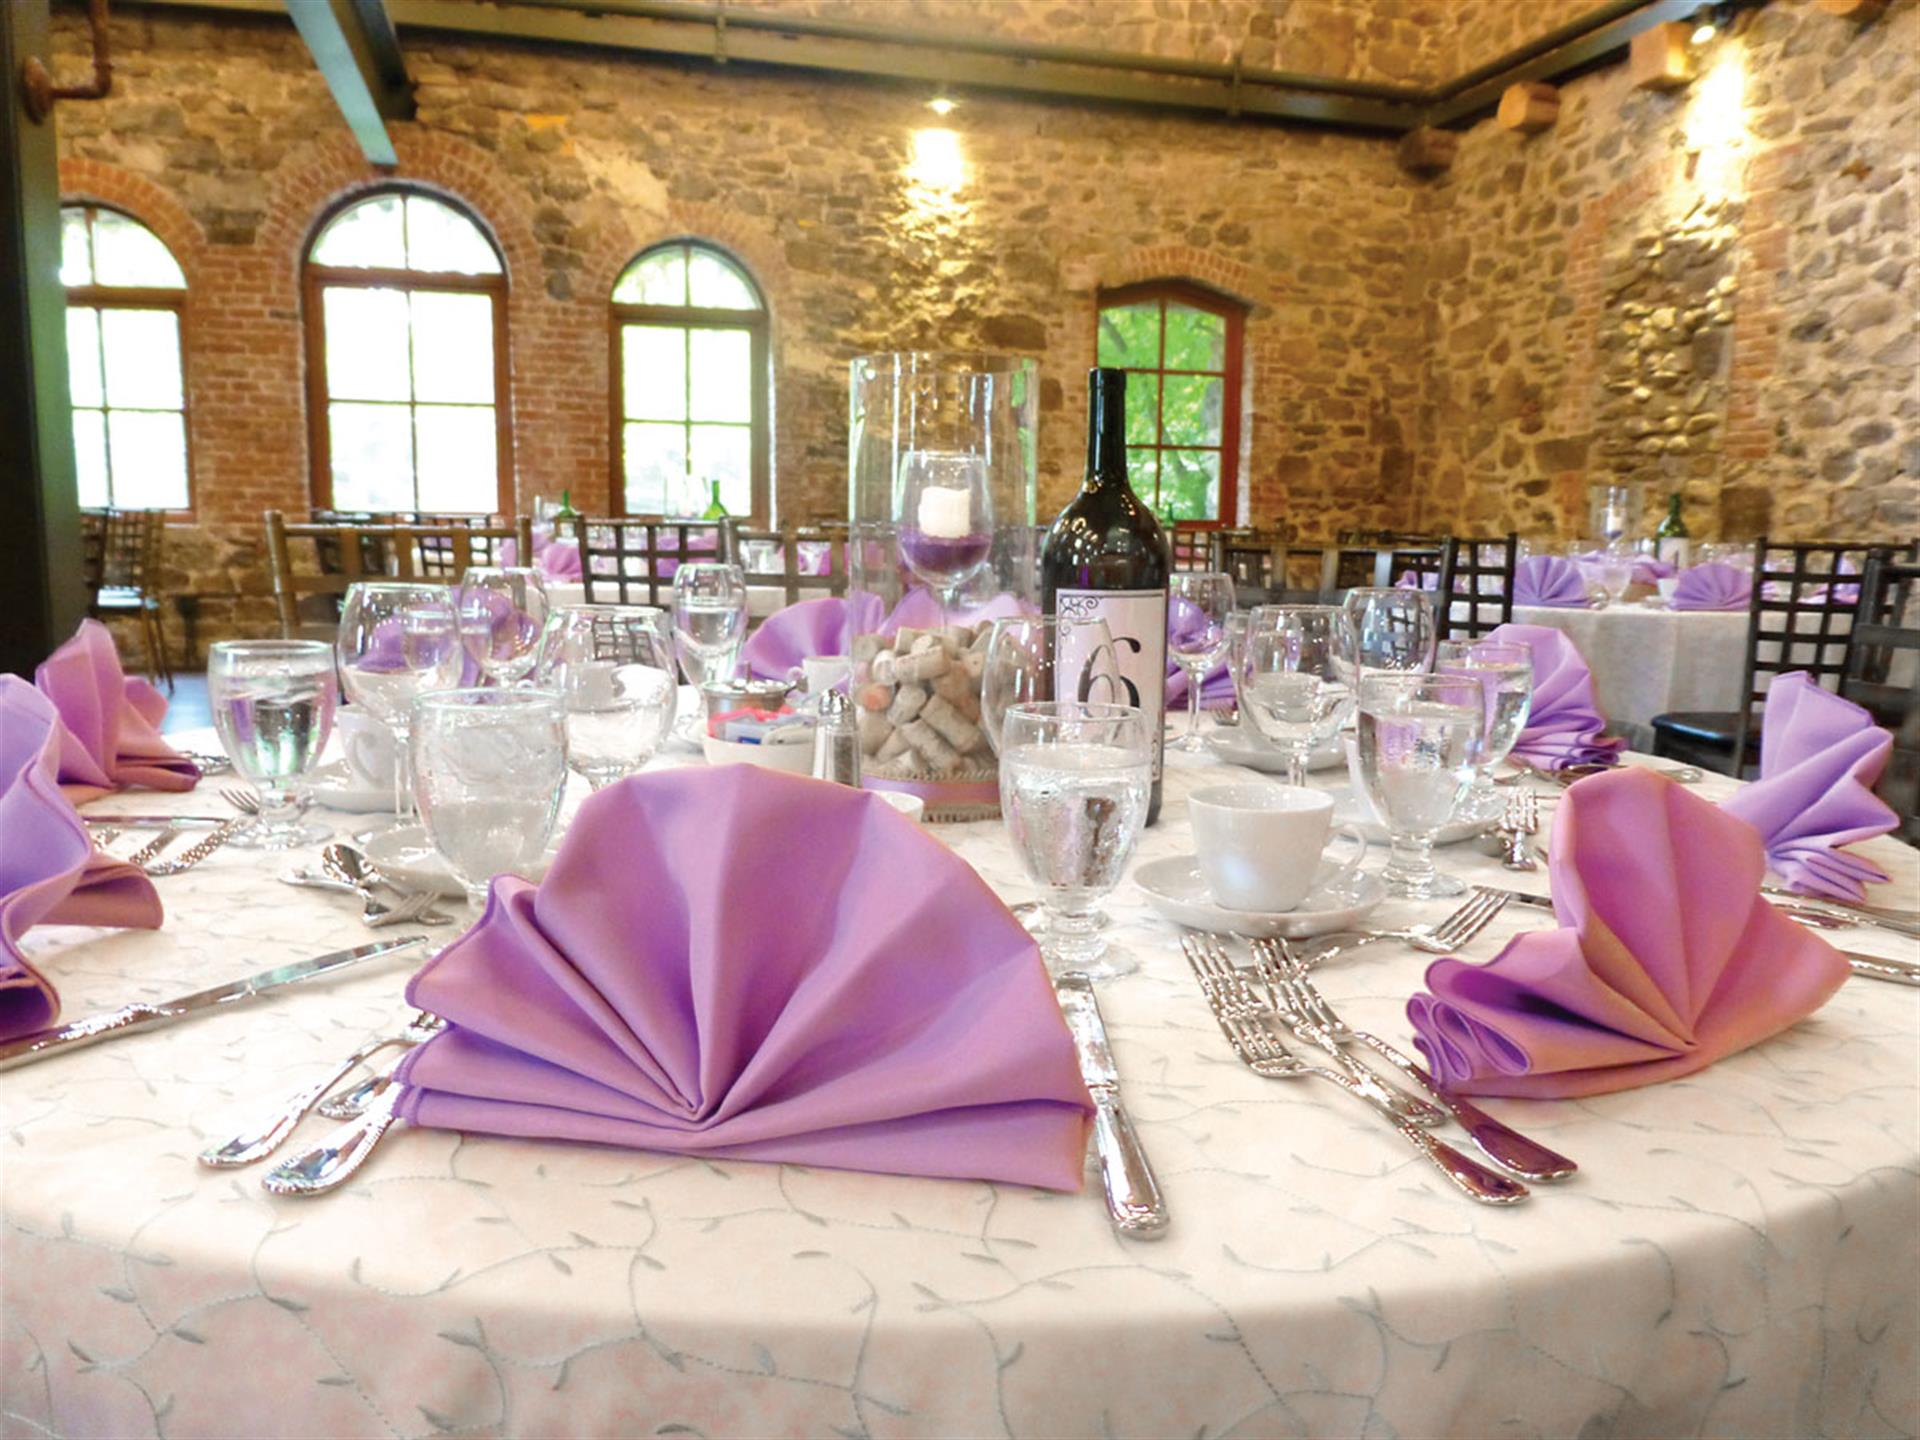 banquet table set with purple linens